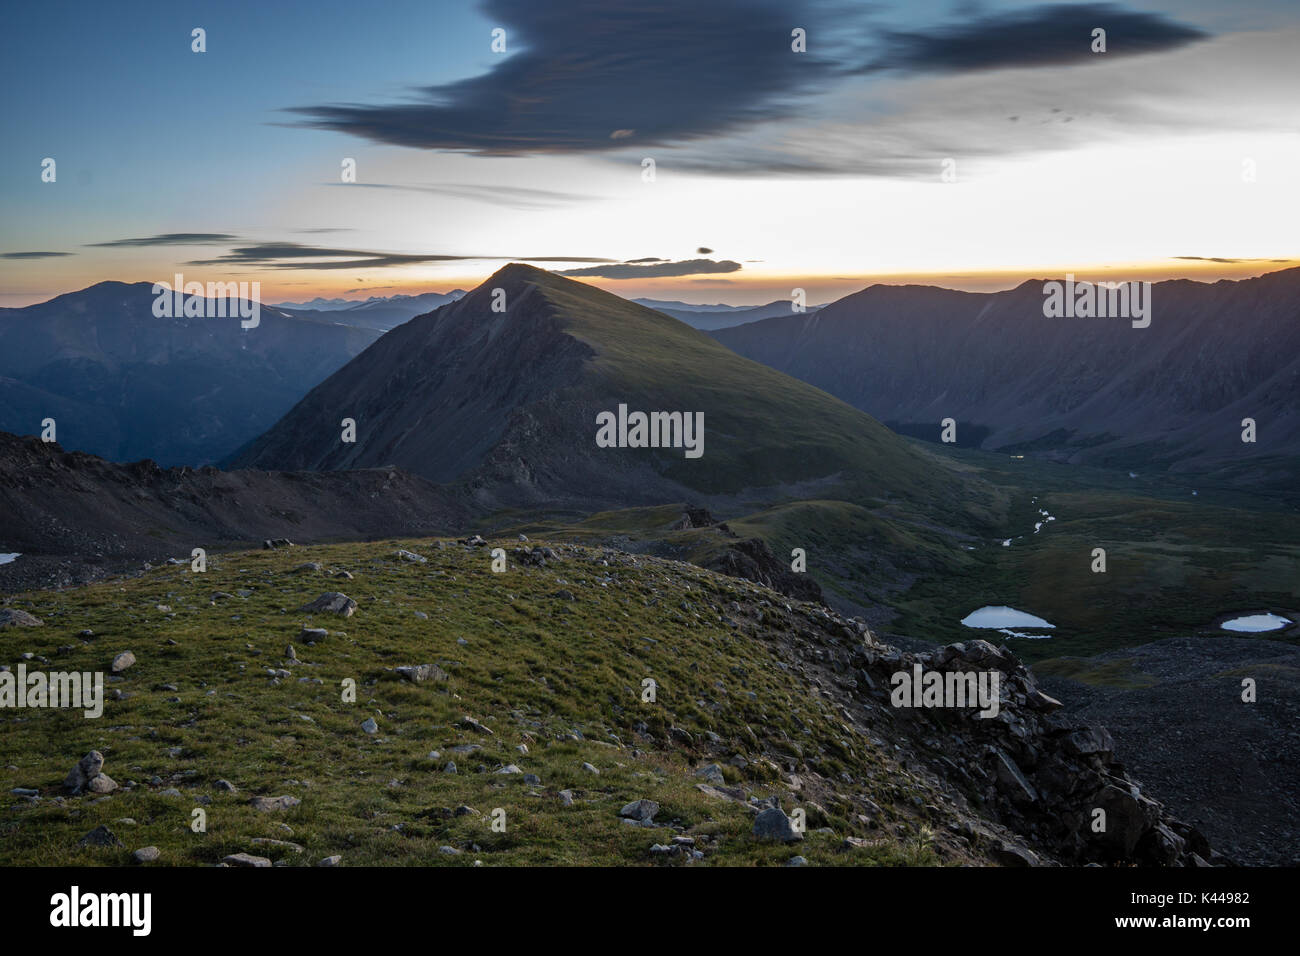 From the side of Grays Peak, looking down on the famous Kelso Ridge - Stock Image